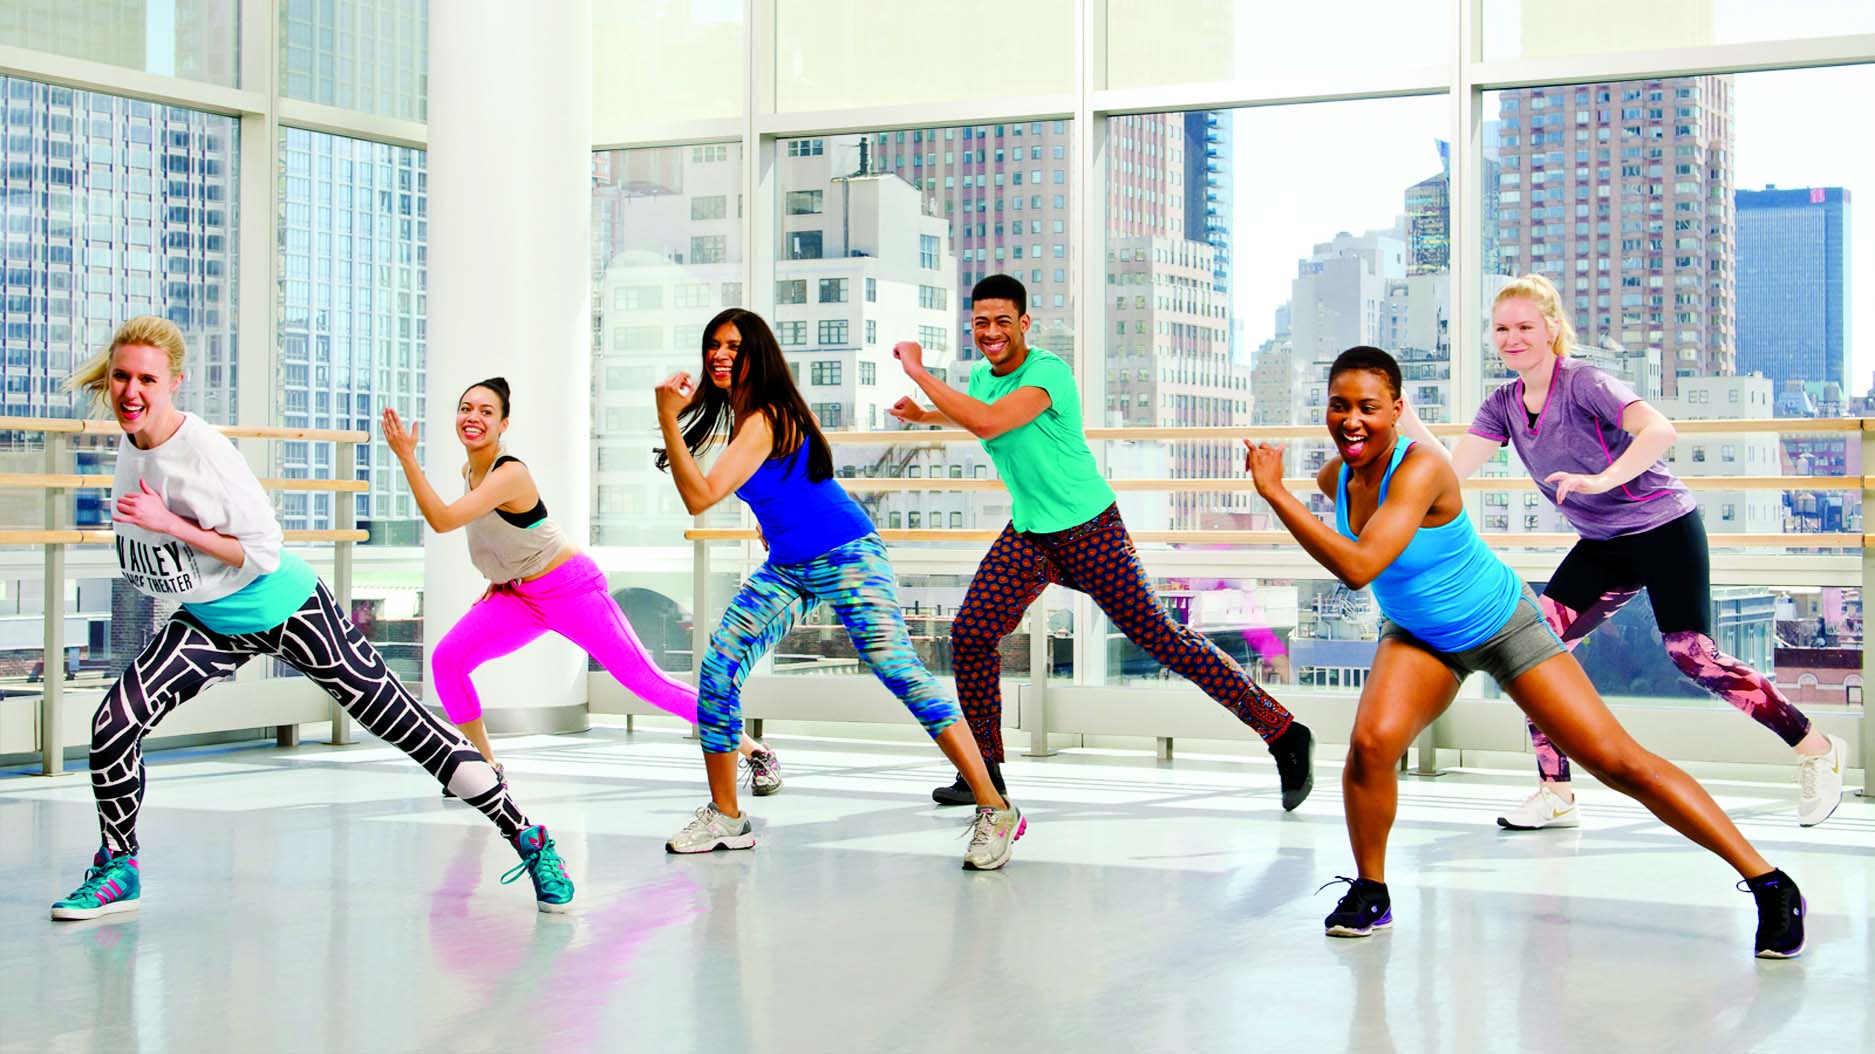 Indulge in Zumba dance  to stay emotionally fit